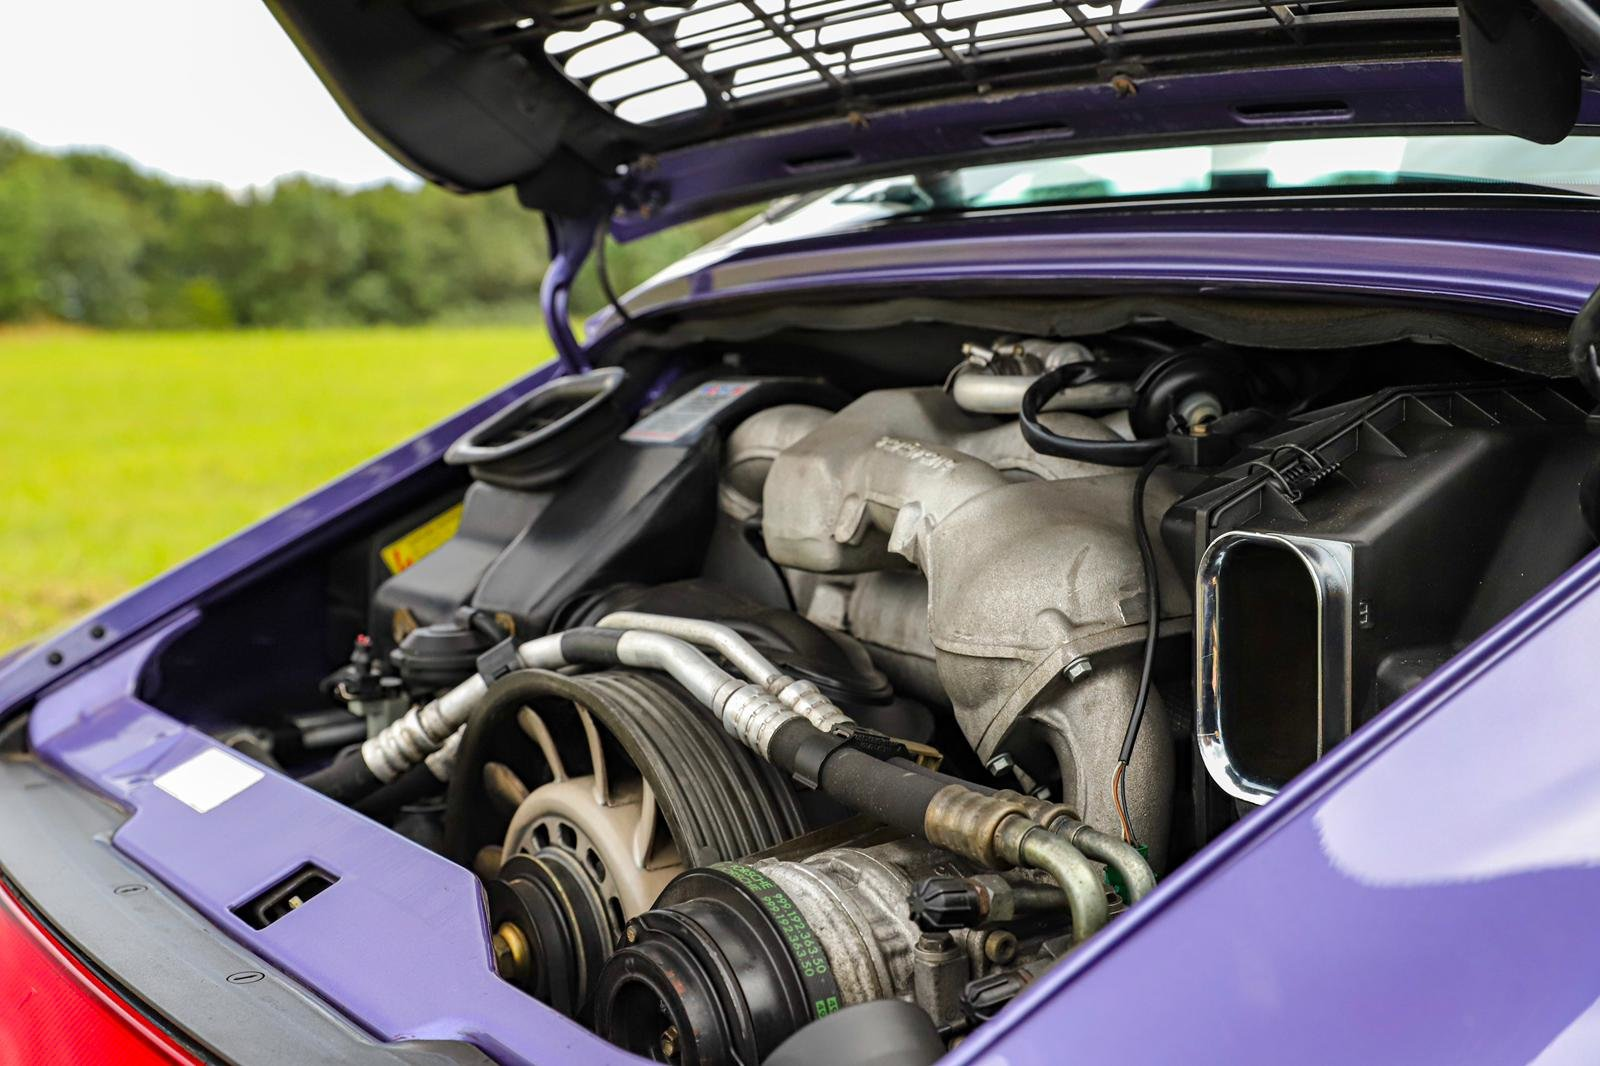 1998 RARE 993 LOW MILEAGE MANUAL C 4S - SPECTACULAR VIOLET BLUE   For Sale (picture 6 of 6)